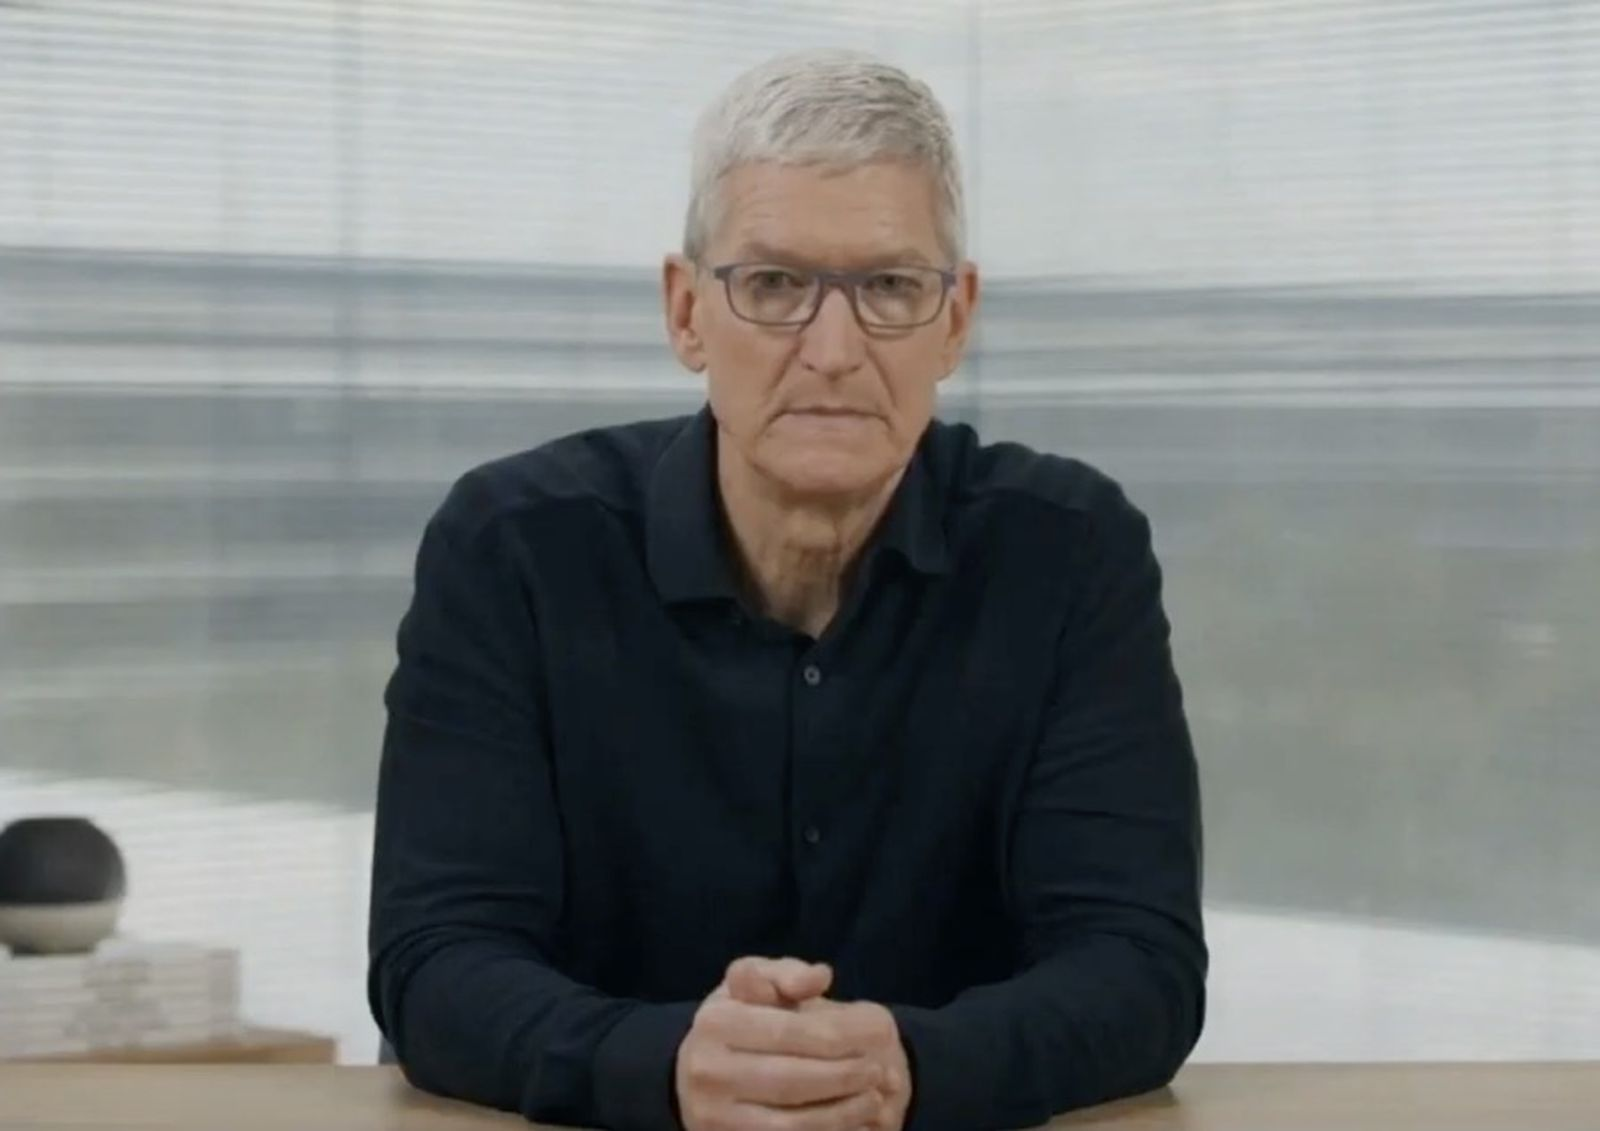 Apple CEO Tim Cook Talks Antitrust Investigation, Trump Relationship, Working From Home and More in... - MacRumors